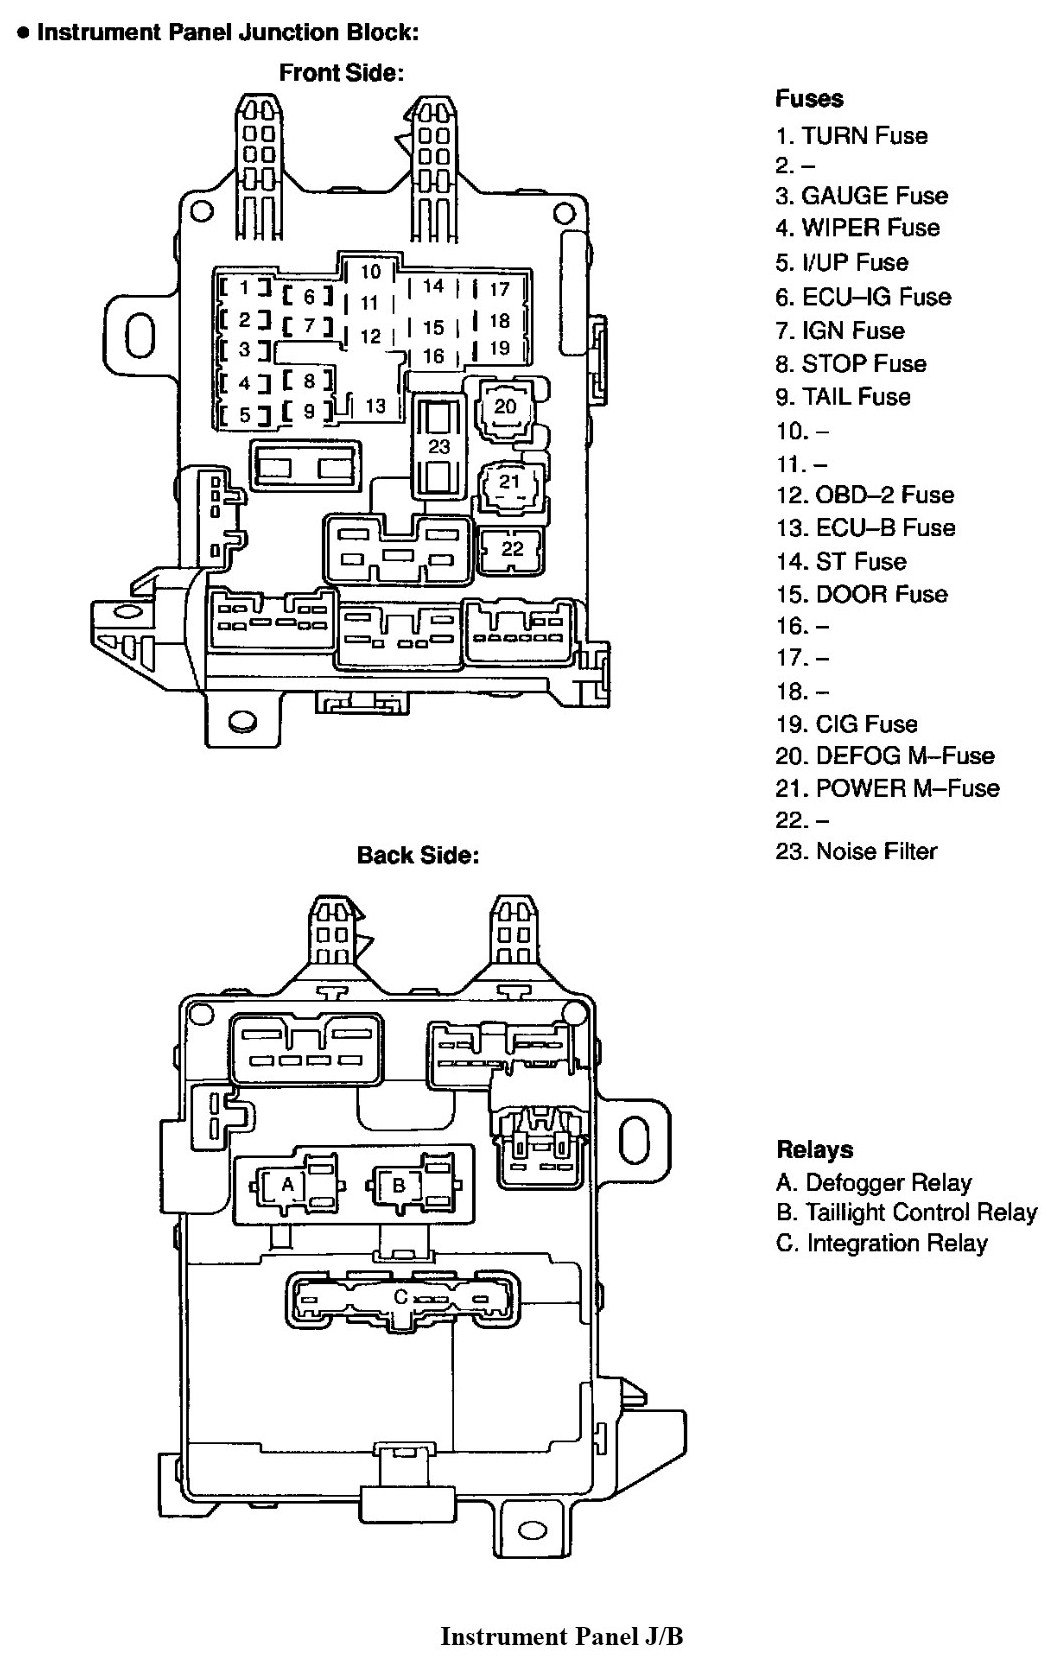 2008 toyota corolla fuse box diagram wiring diagrams bib 2007 toyota corolla fuse panel diagram data diagram schematic 2003 toyota corolla ce fuse box wiring